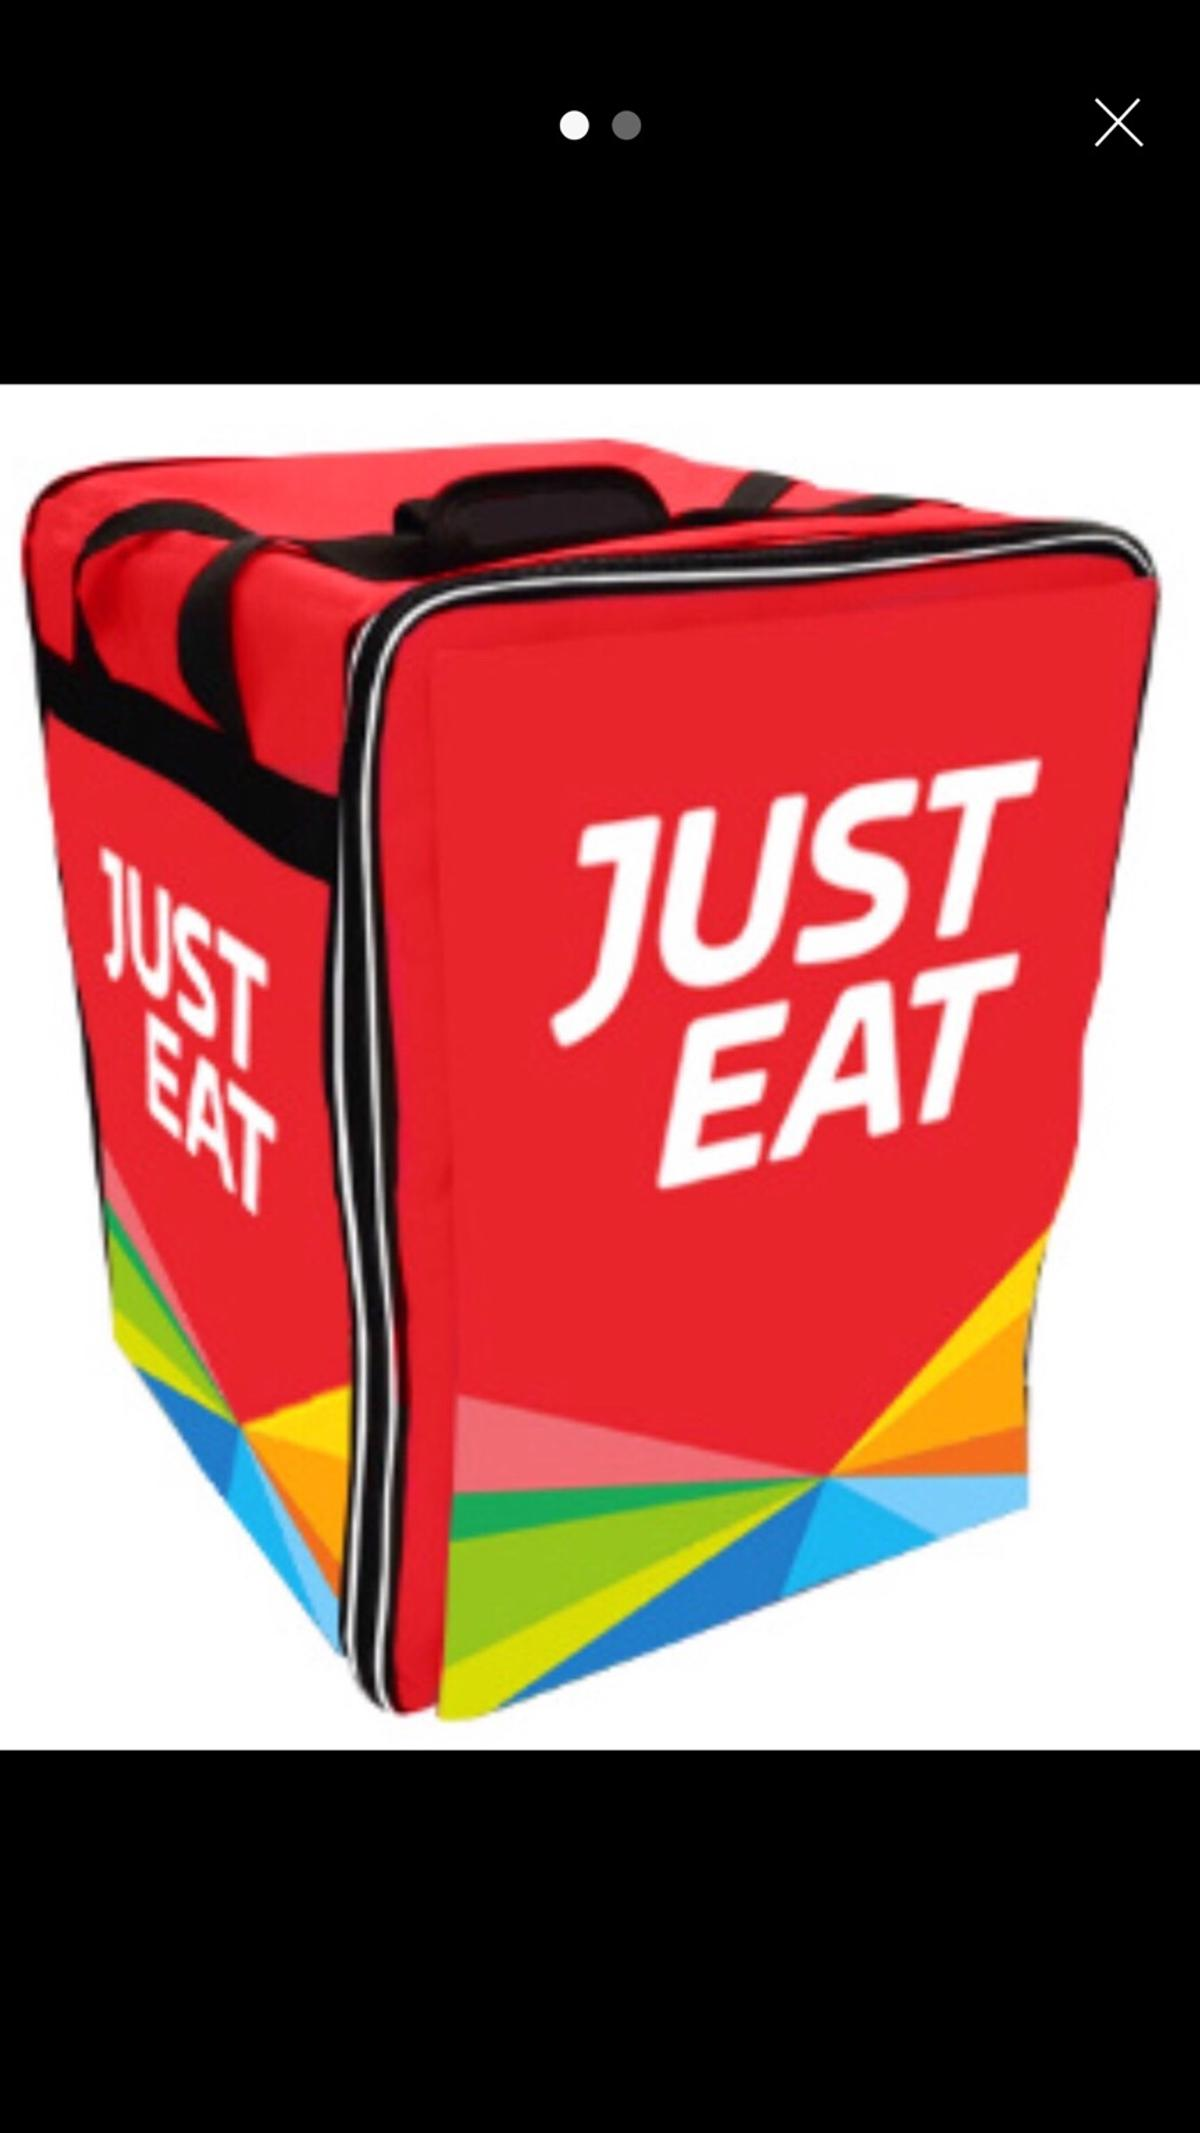 Just Eat Thermal Delivery Bag In Sk4 Stockport For 1200